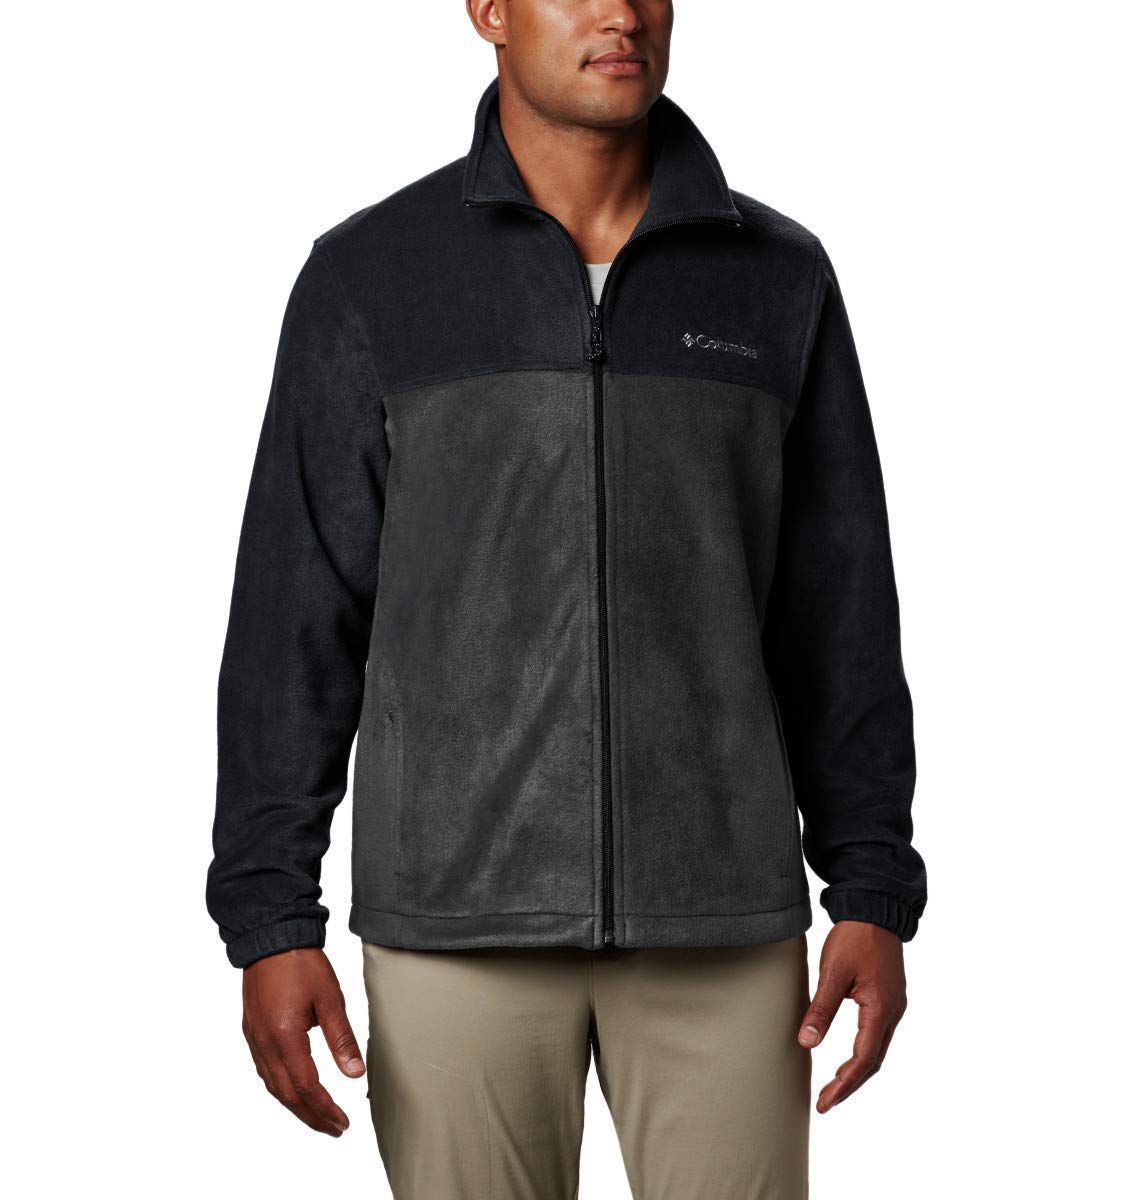 Columbia Men's Tall Size Steens Mountain Full Zip 2.0, Soft Fleece with Classic Fit, Black/Grill, 4XT by Columbia